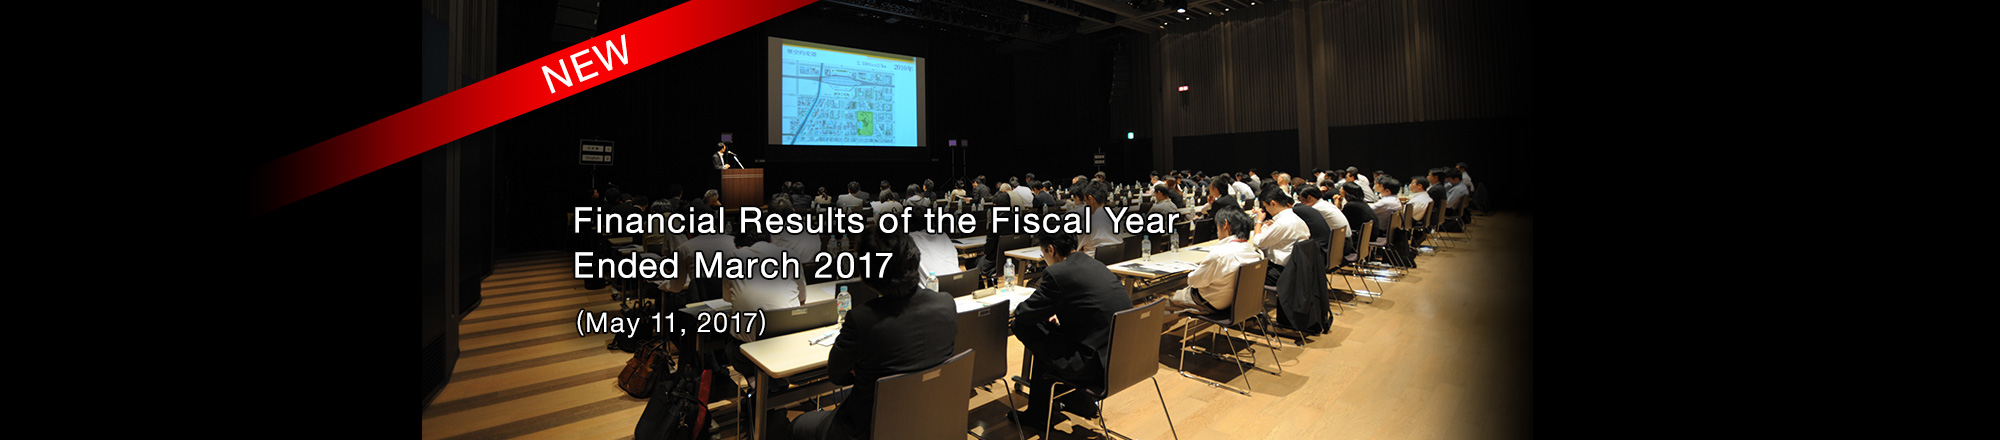 Financial Results  for the Third Quarter of the Fiscal Year Ending March 2017 (February 2, 2017)